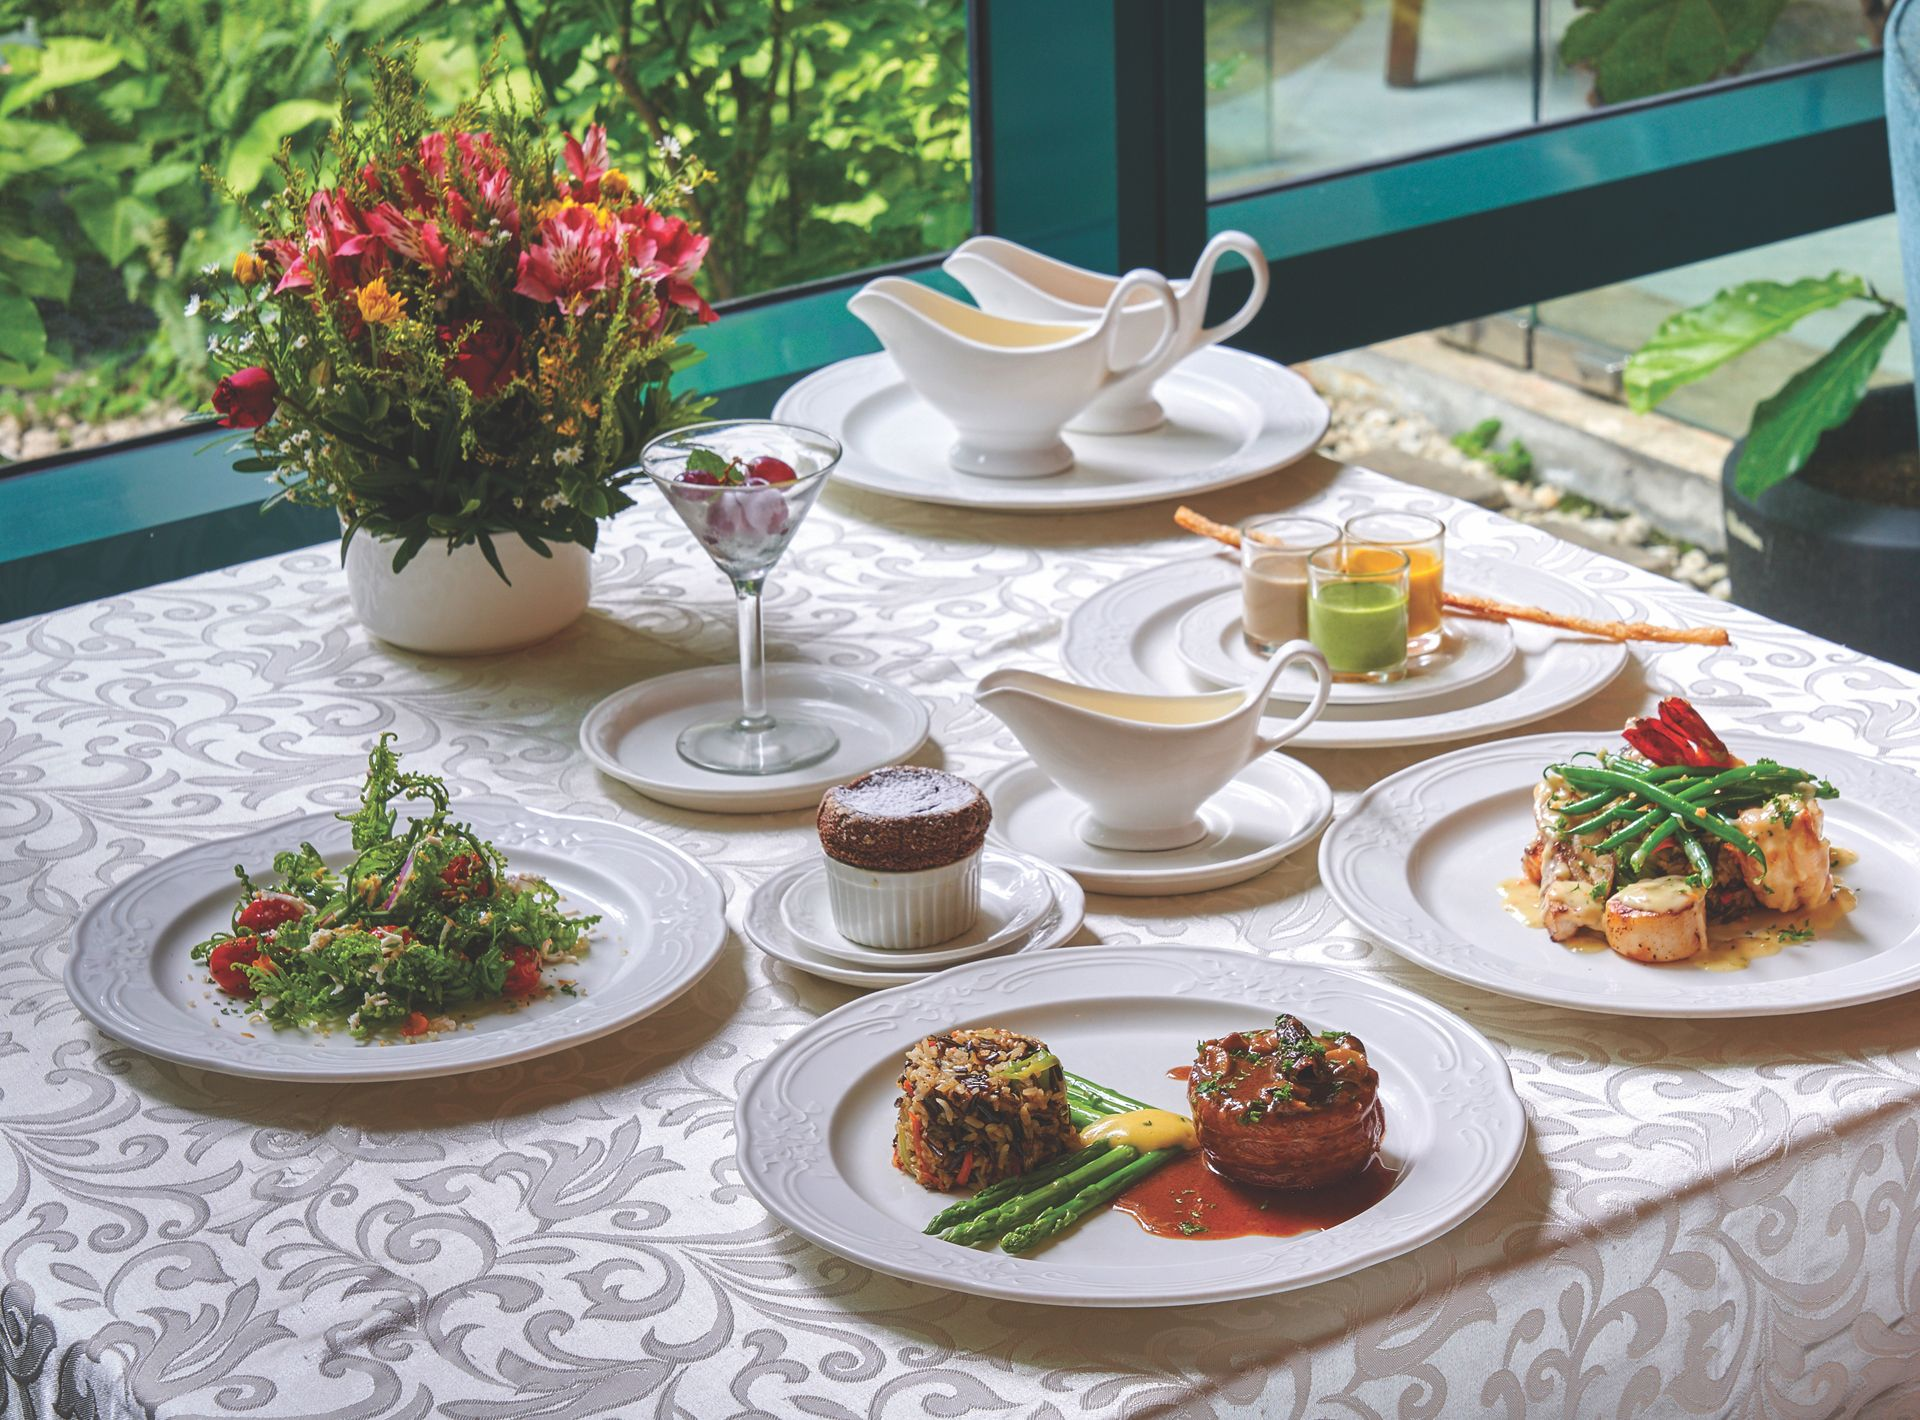 Exciting Dining Deals at Rockwell This Weekend